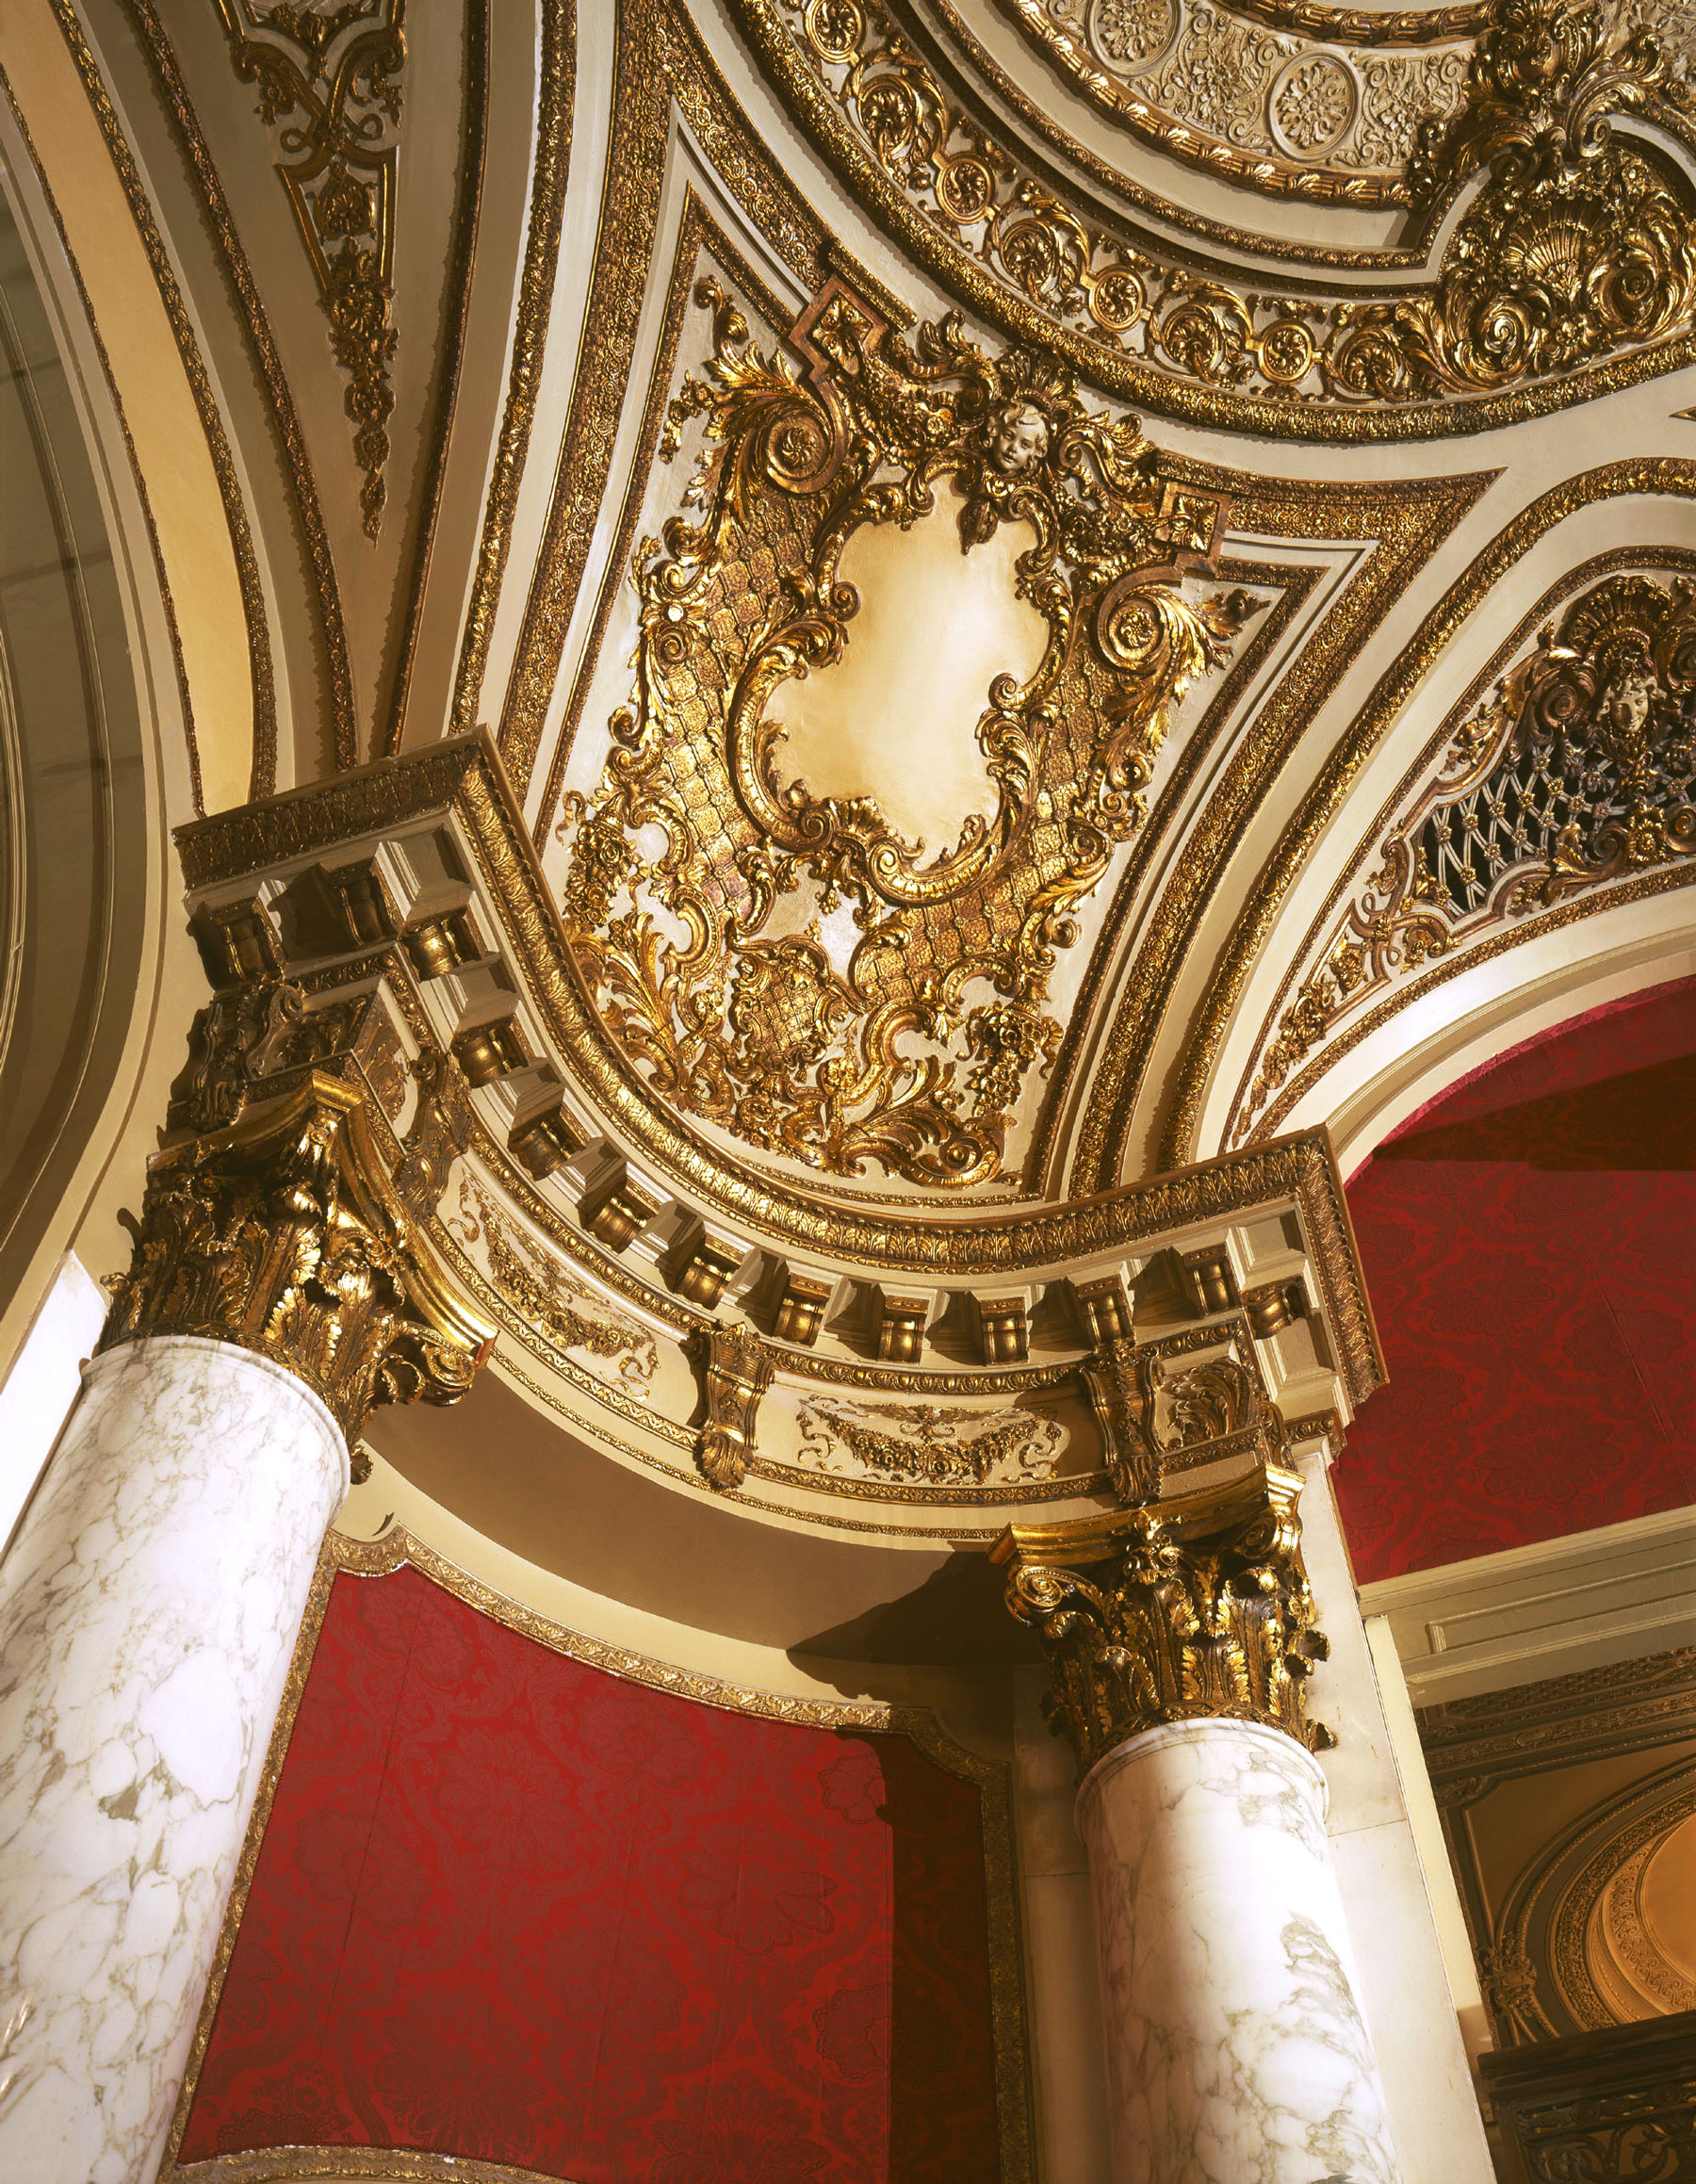 Details of the marble columns and ceiling ornamentation.